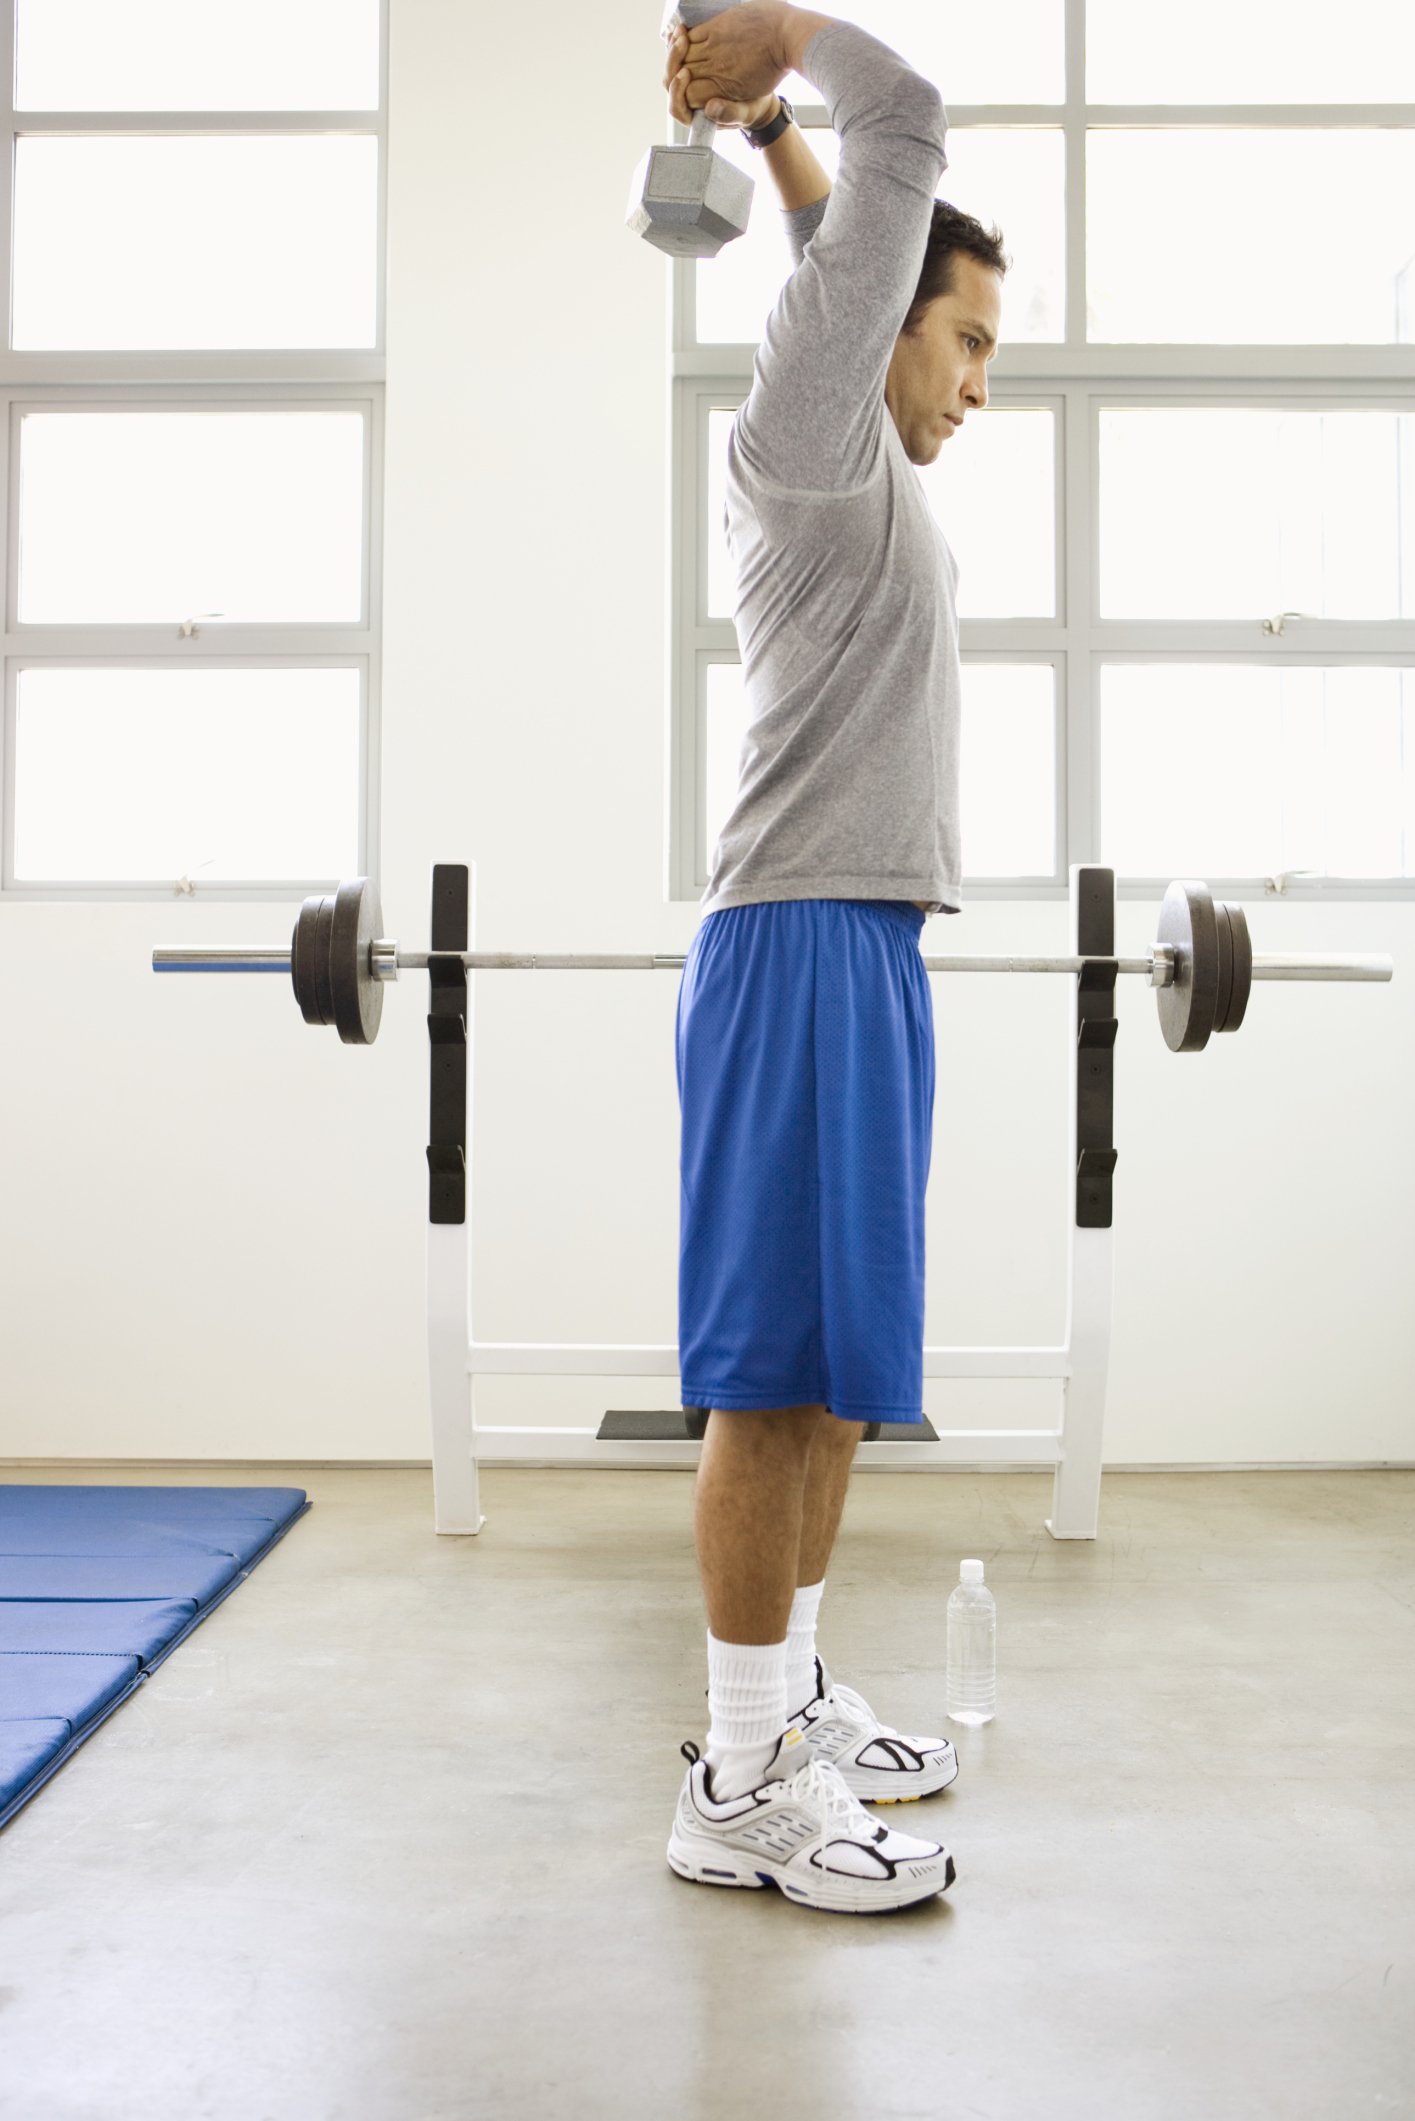 Exercises to Gain Mass With a 25-Pound Dumbbell | Chron com